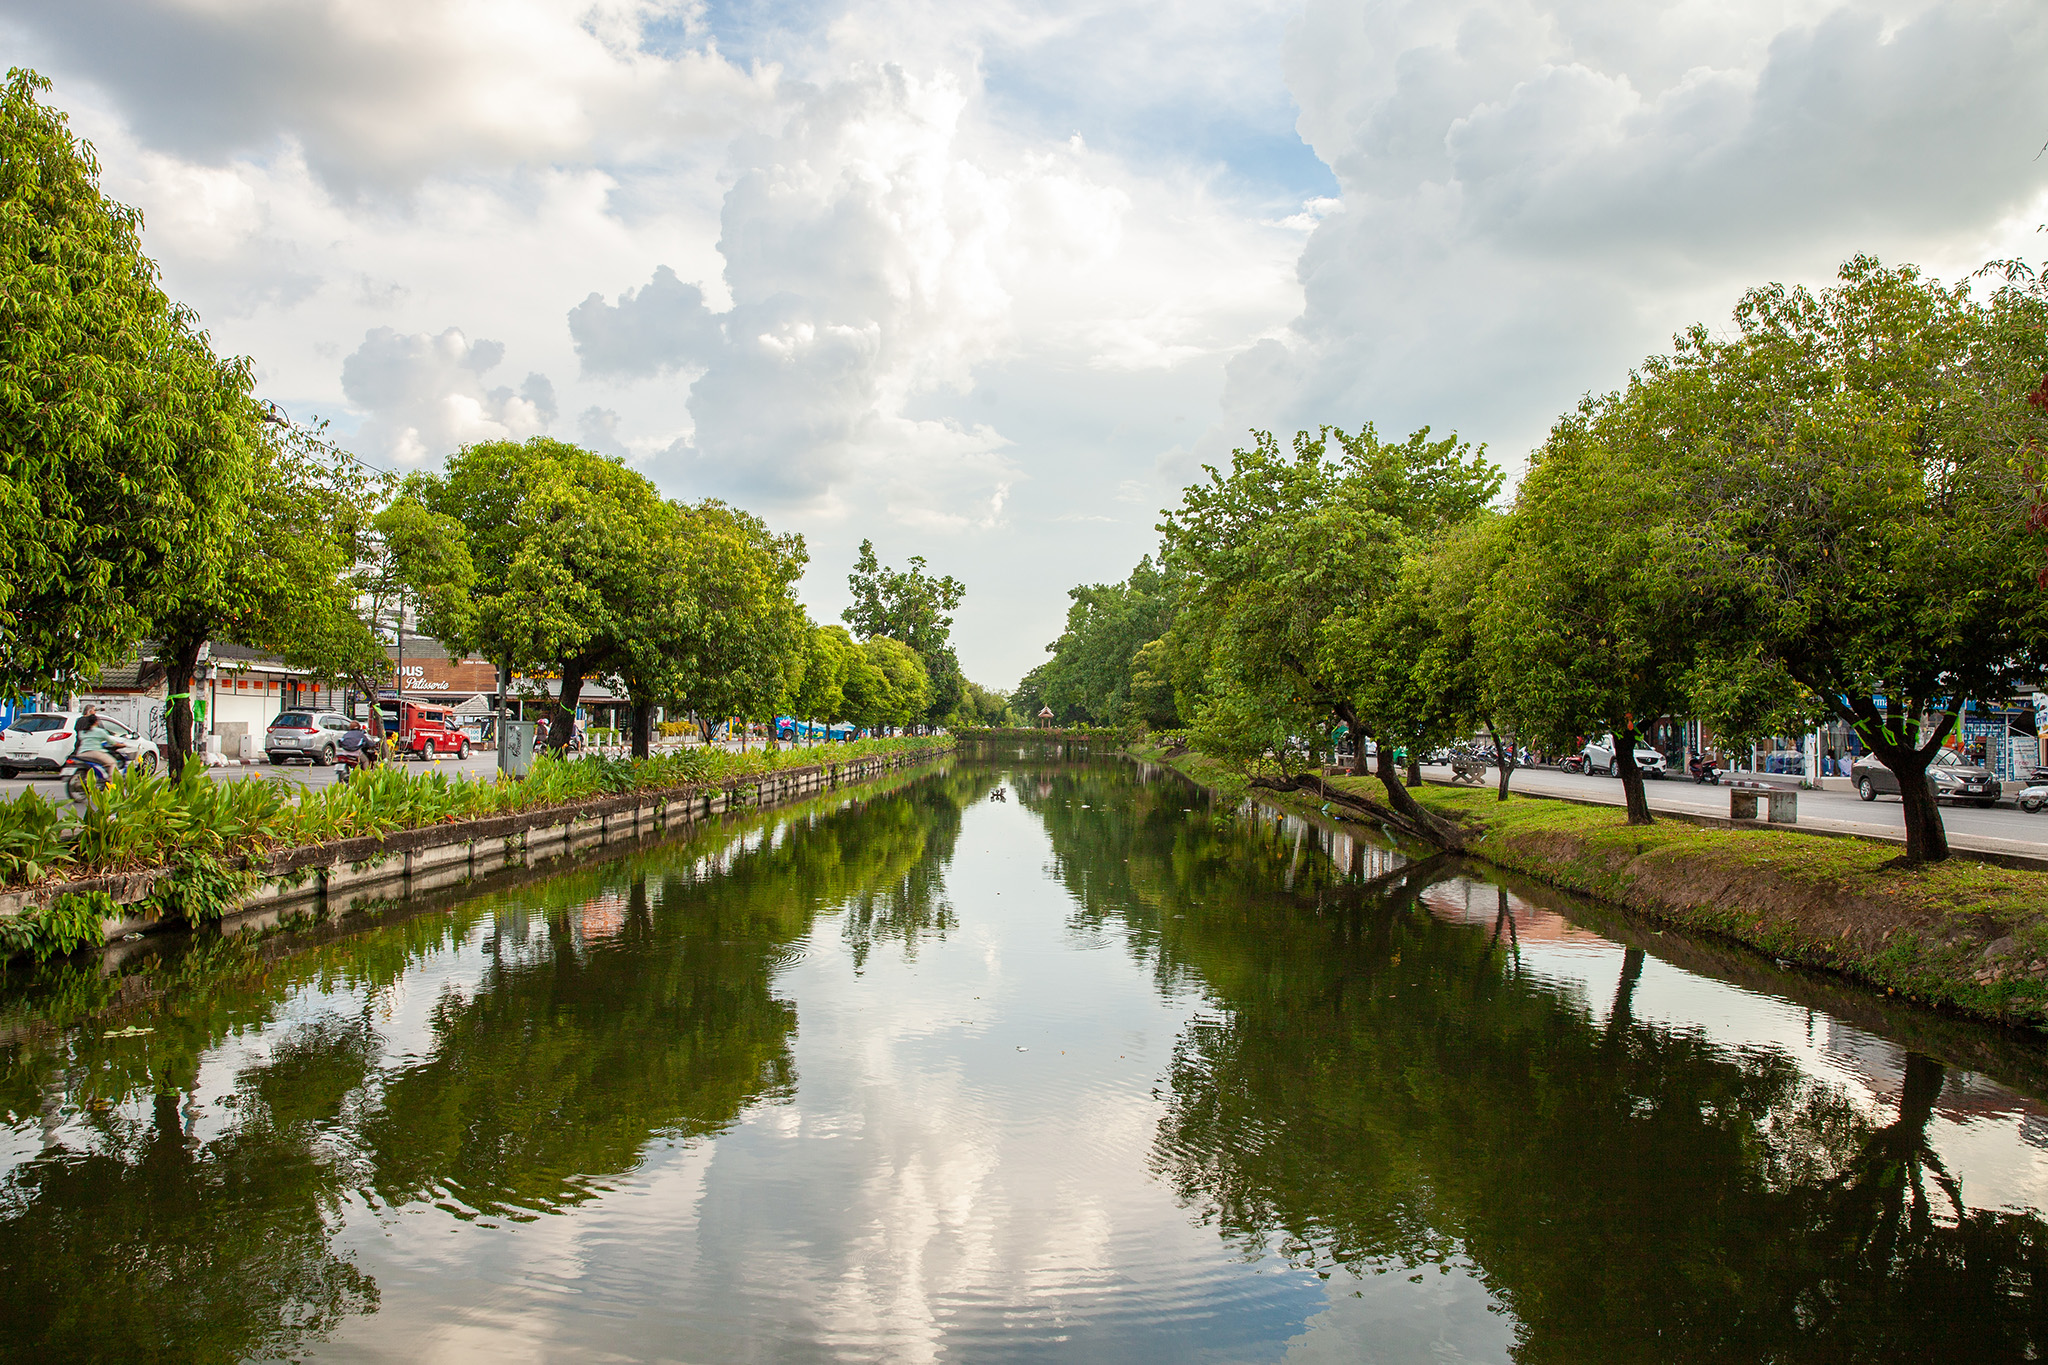 the canals surrounding the Old City